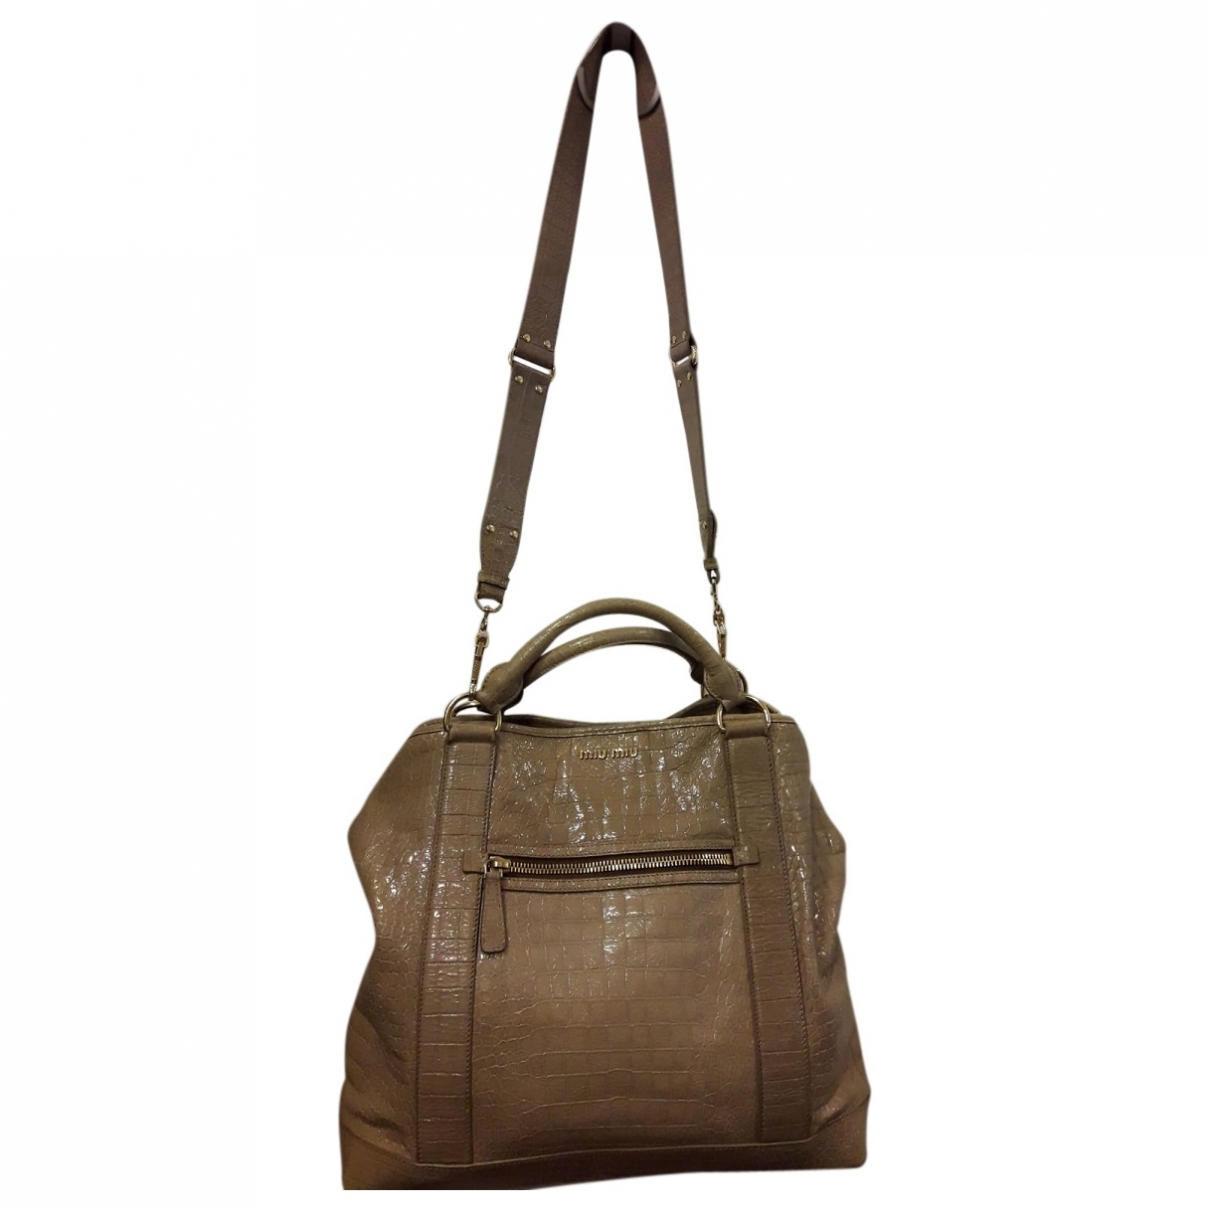 Miu Miu Bow bag Beige Patent leather handbag for Women \N